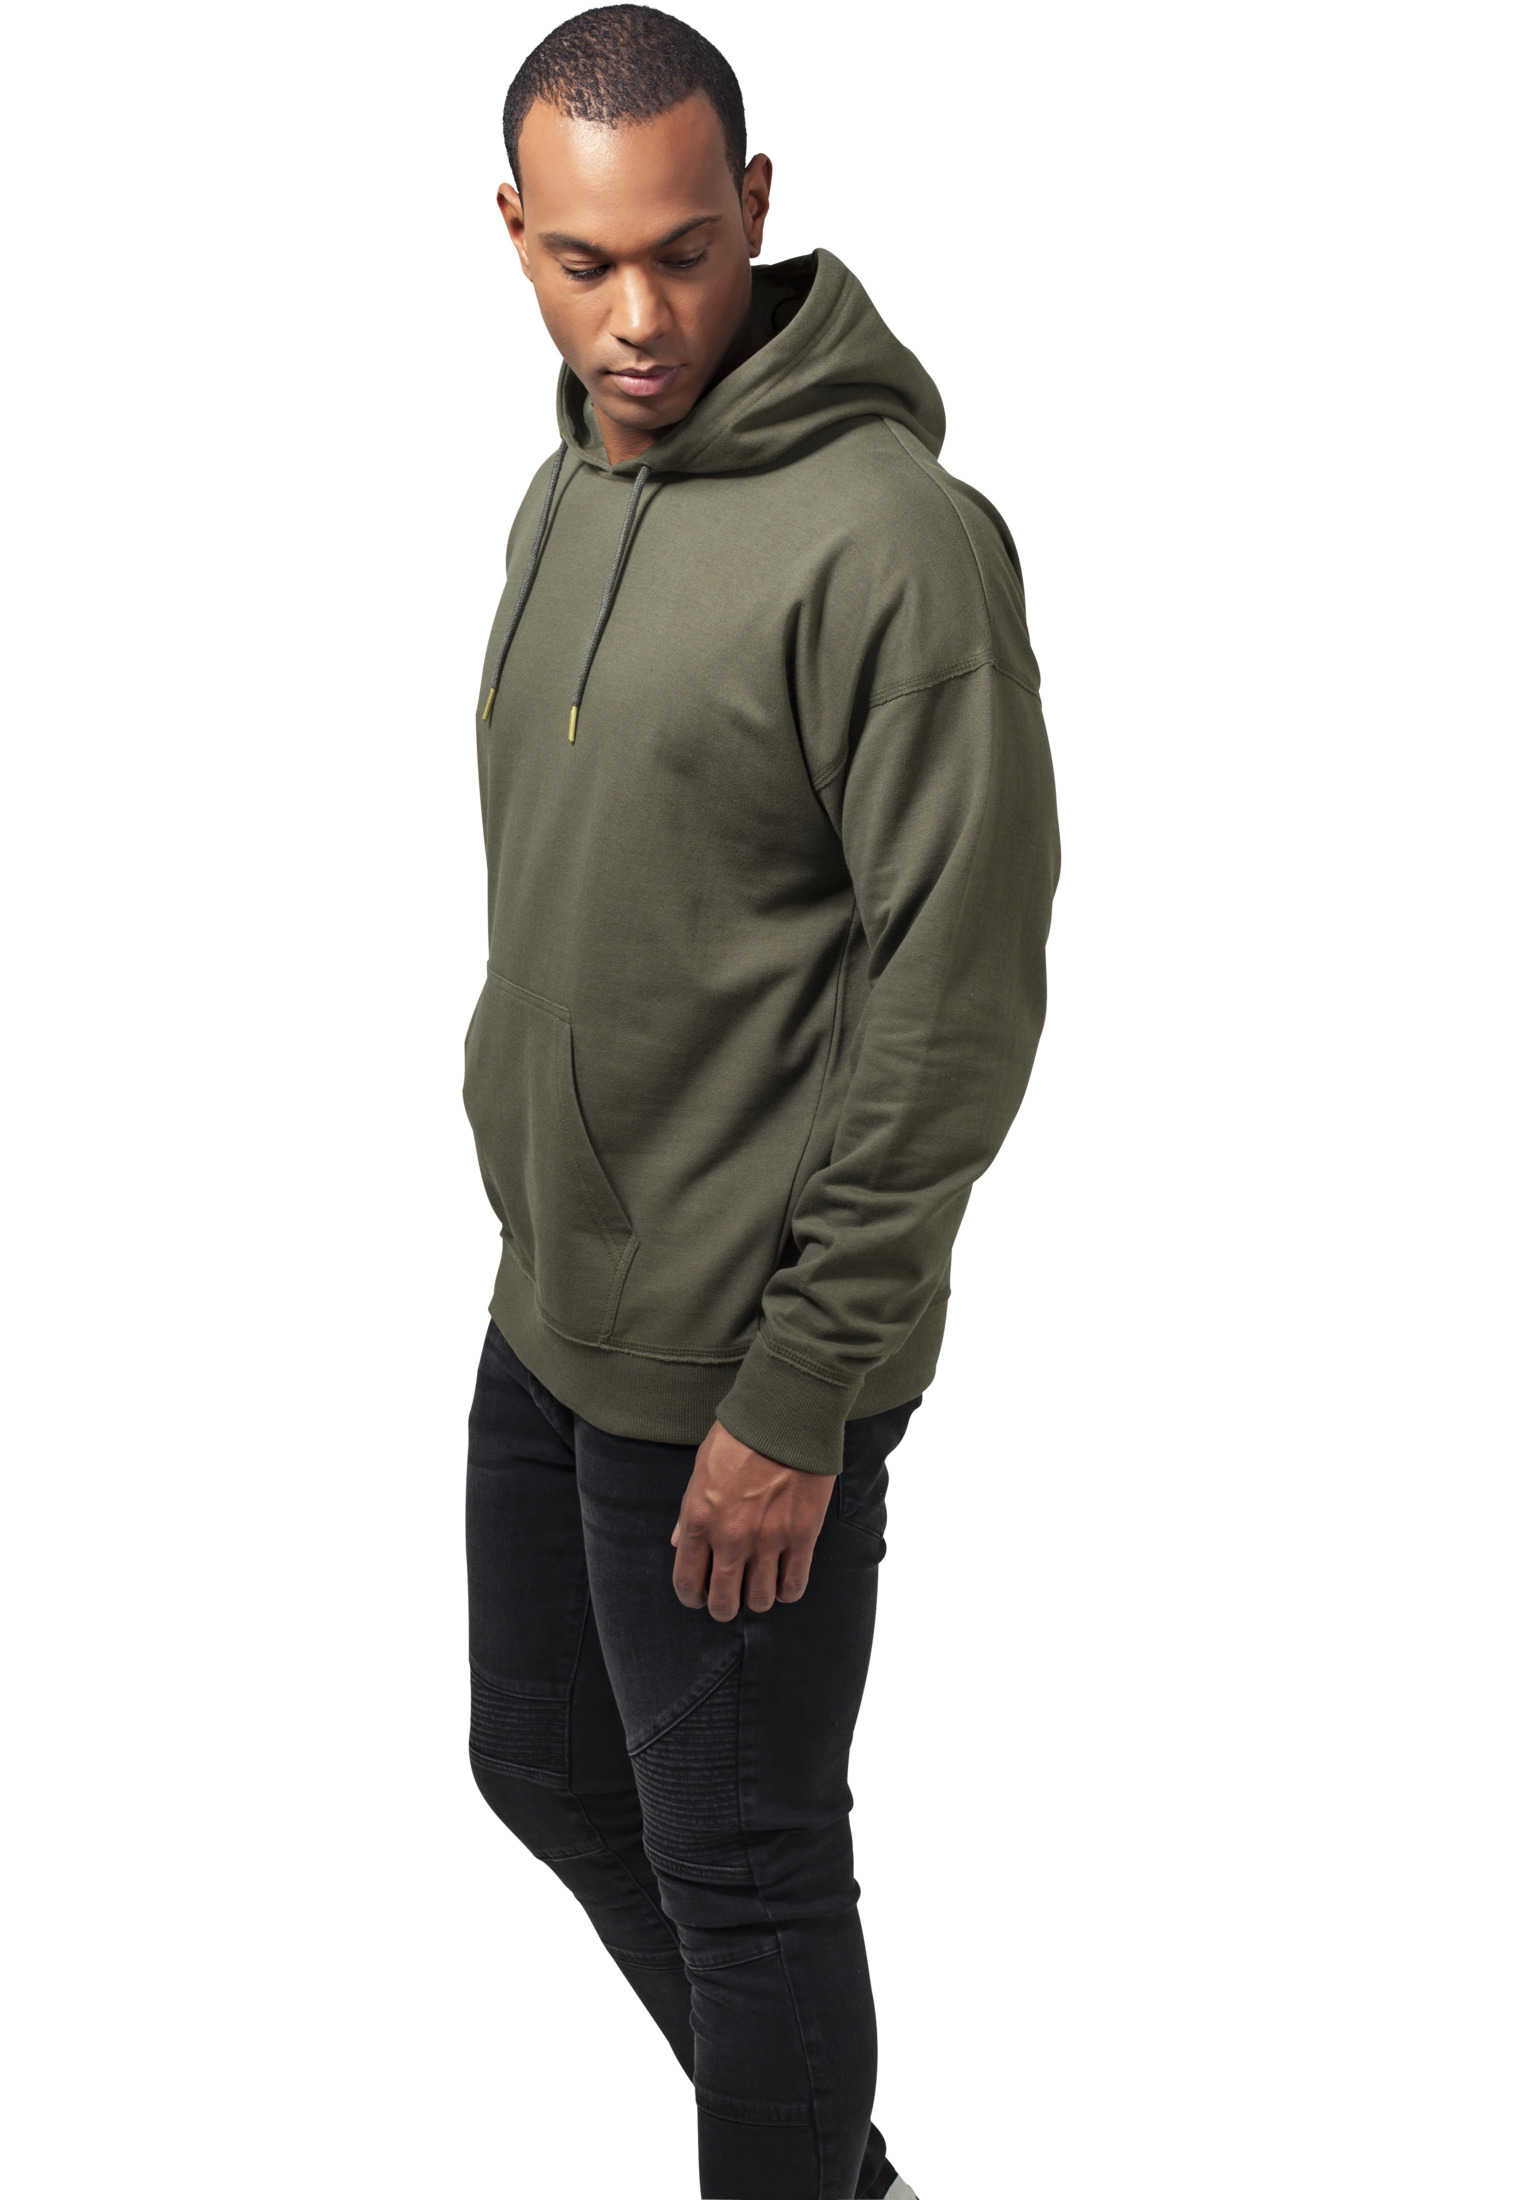 charly lownoise hoodie olive side